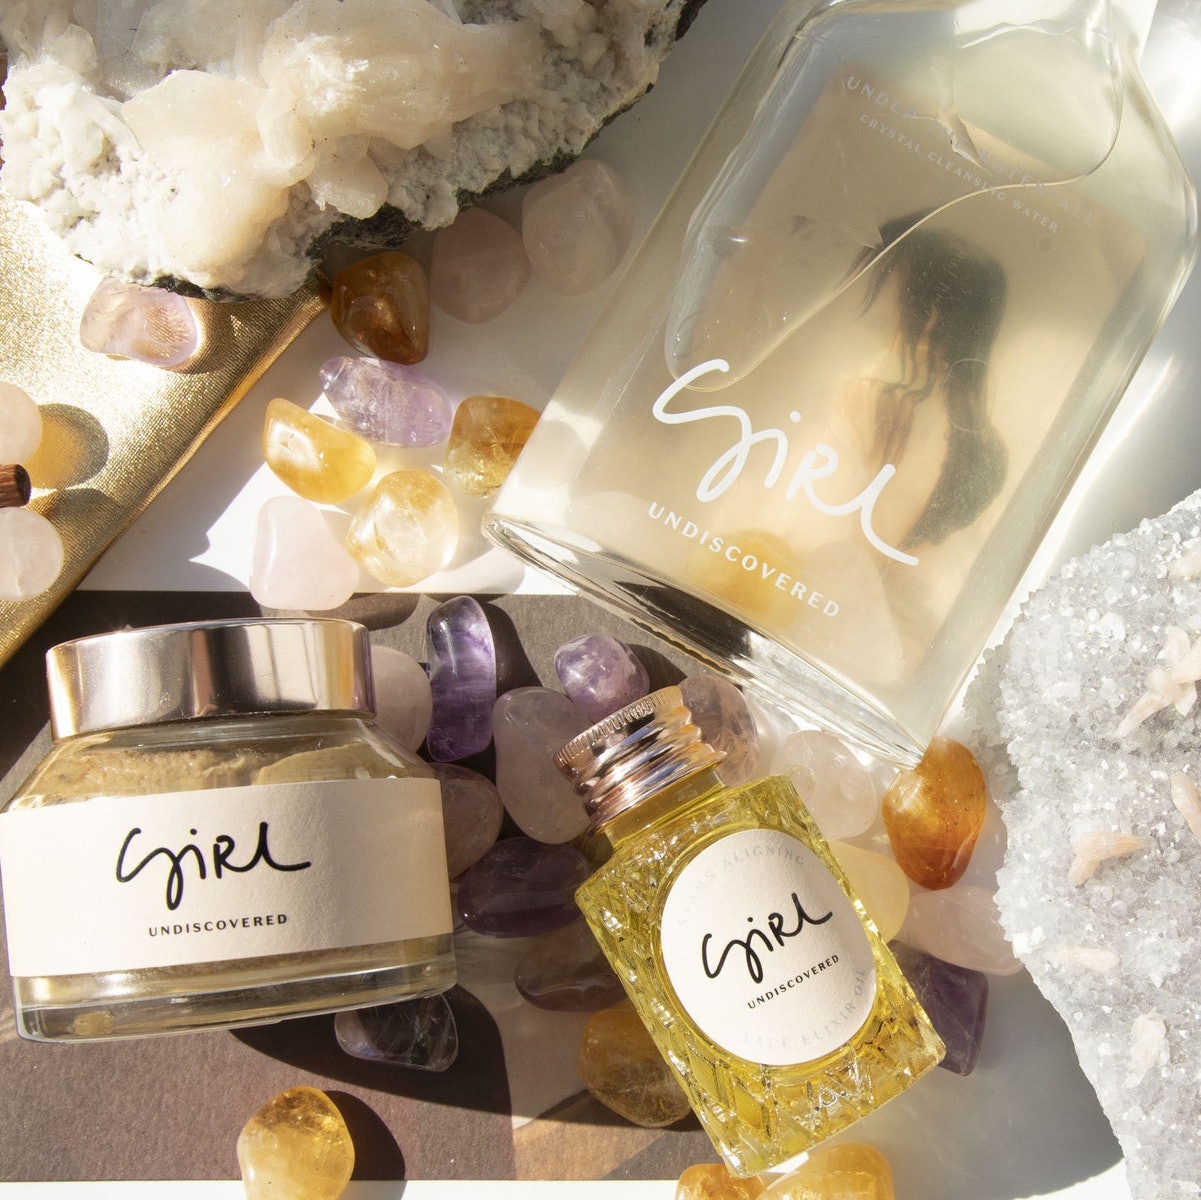 THE ZOE REPORT - Crystal-Infused Beauty Products Look Pretty (& They Actually Work, Too)